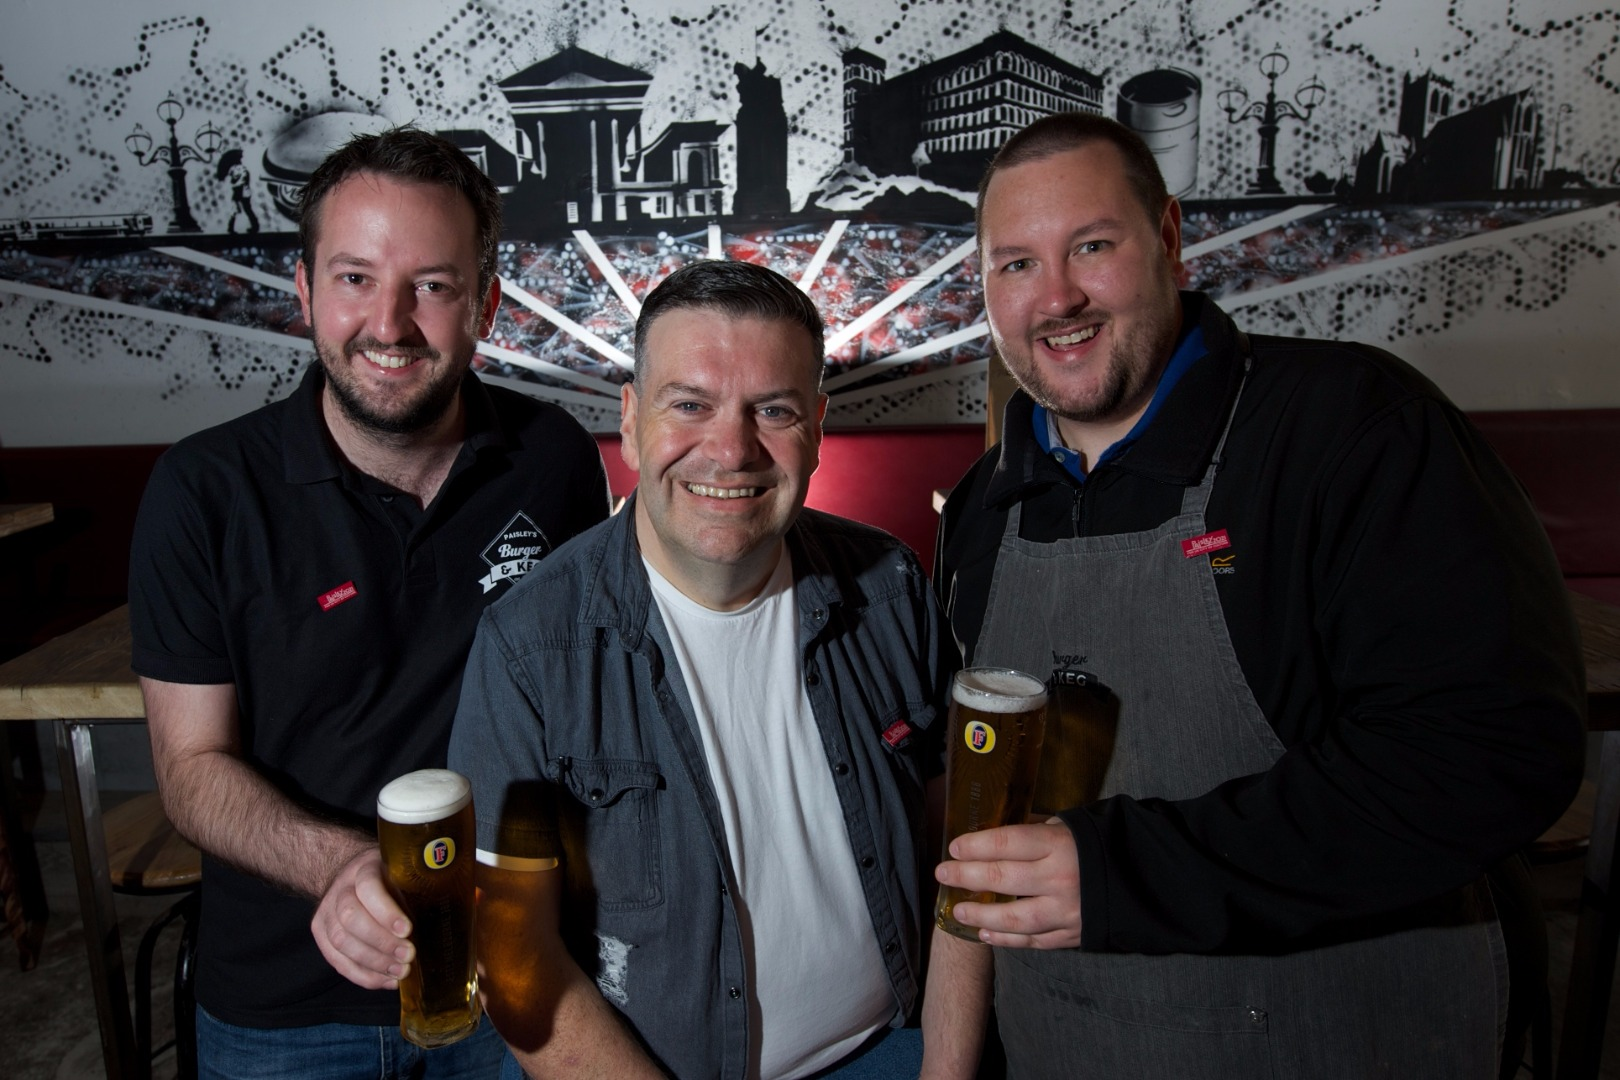 Tom Urie helps Burger and Keg say cheers to Spree programme